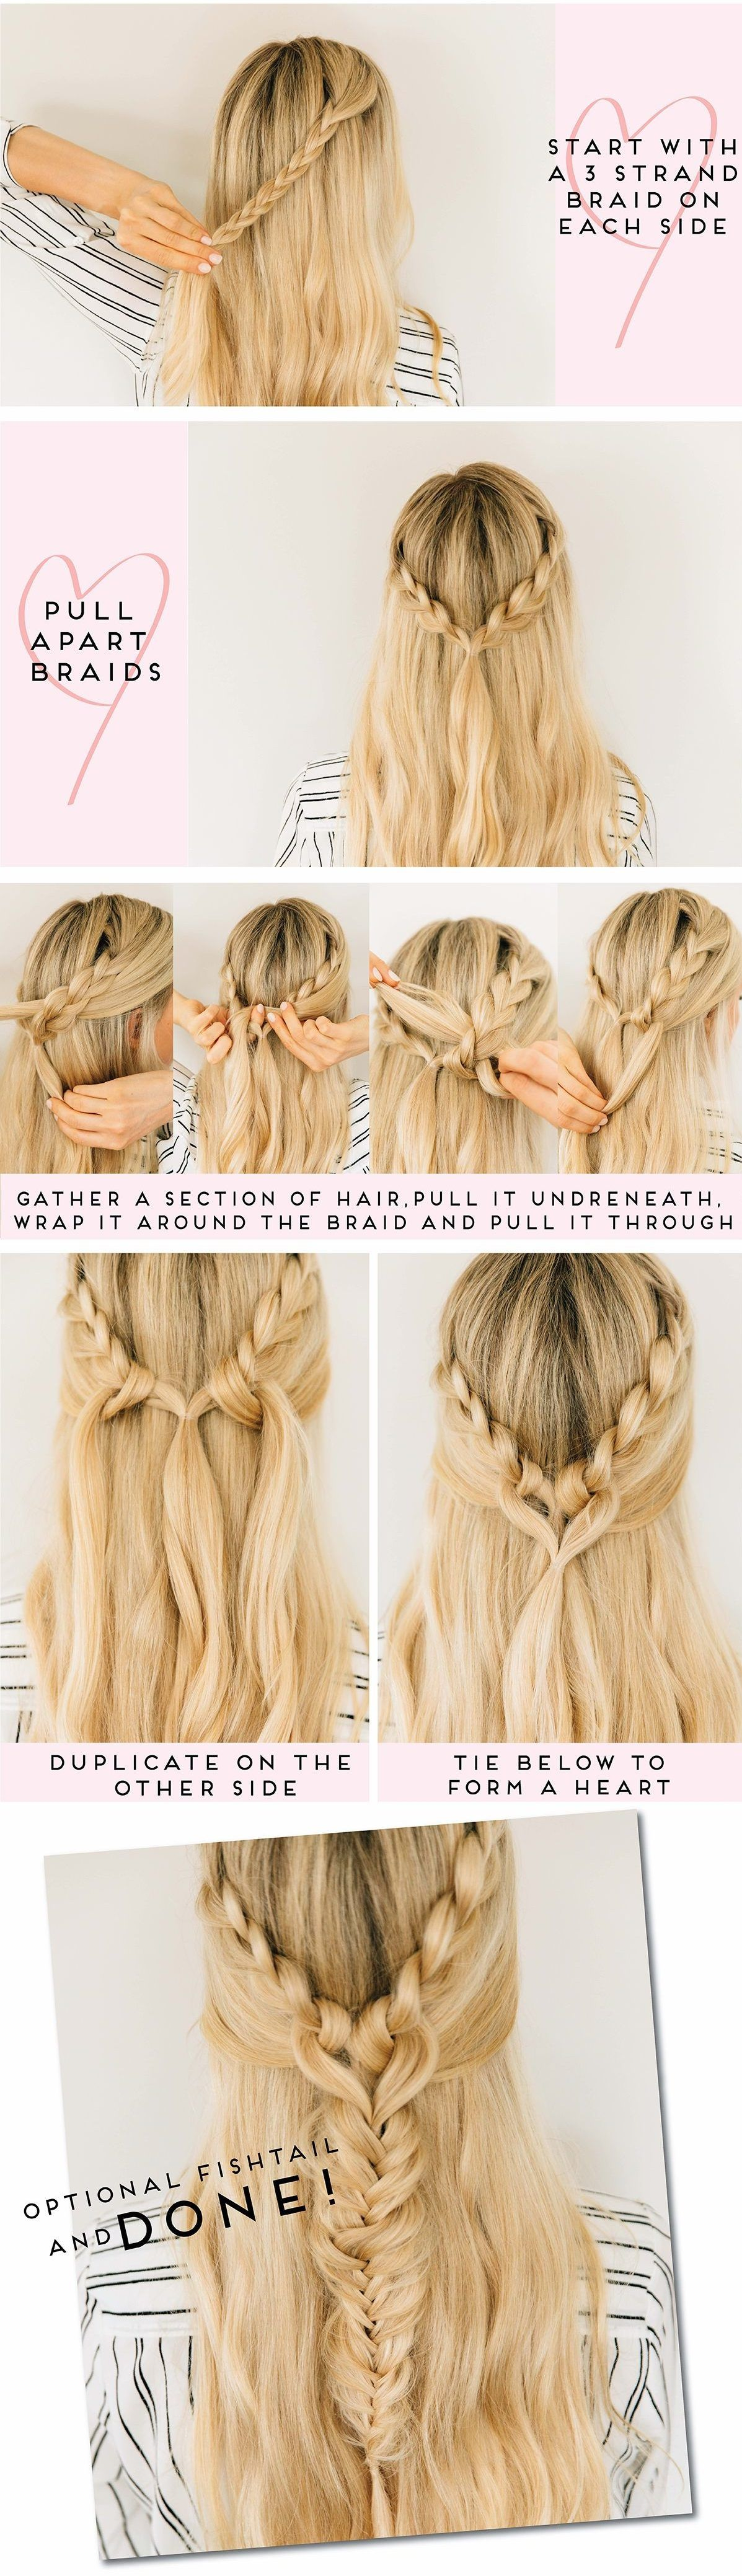 17 Adorable Heart Hairstyles Cute Hairstyles For Kids You Will Love With Hairstyle Braided Hairstyles Easy Medium Length Hair Styles Medium Hair Styles